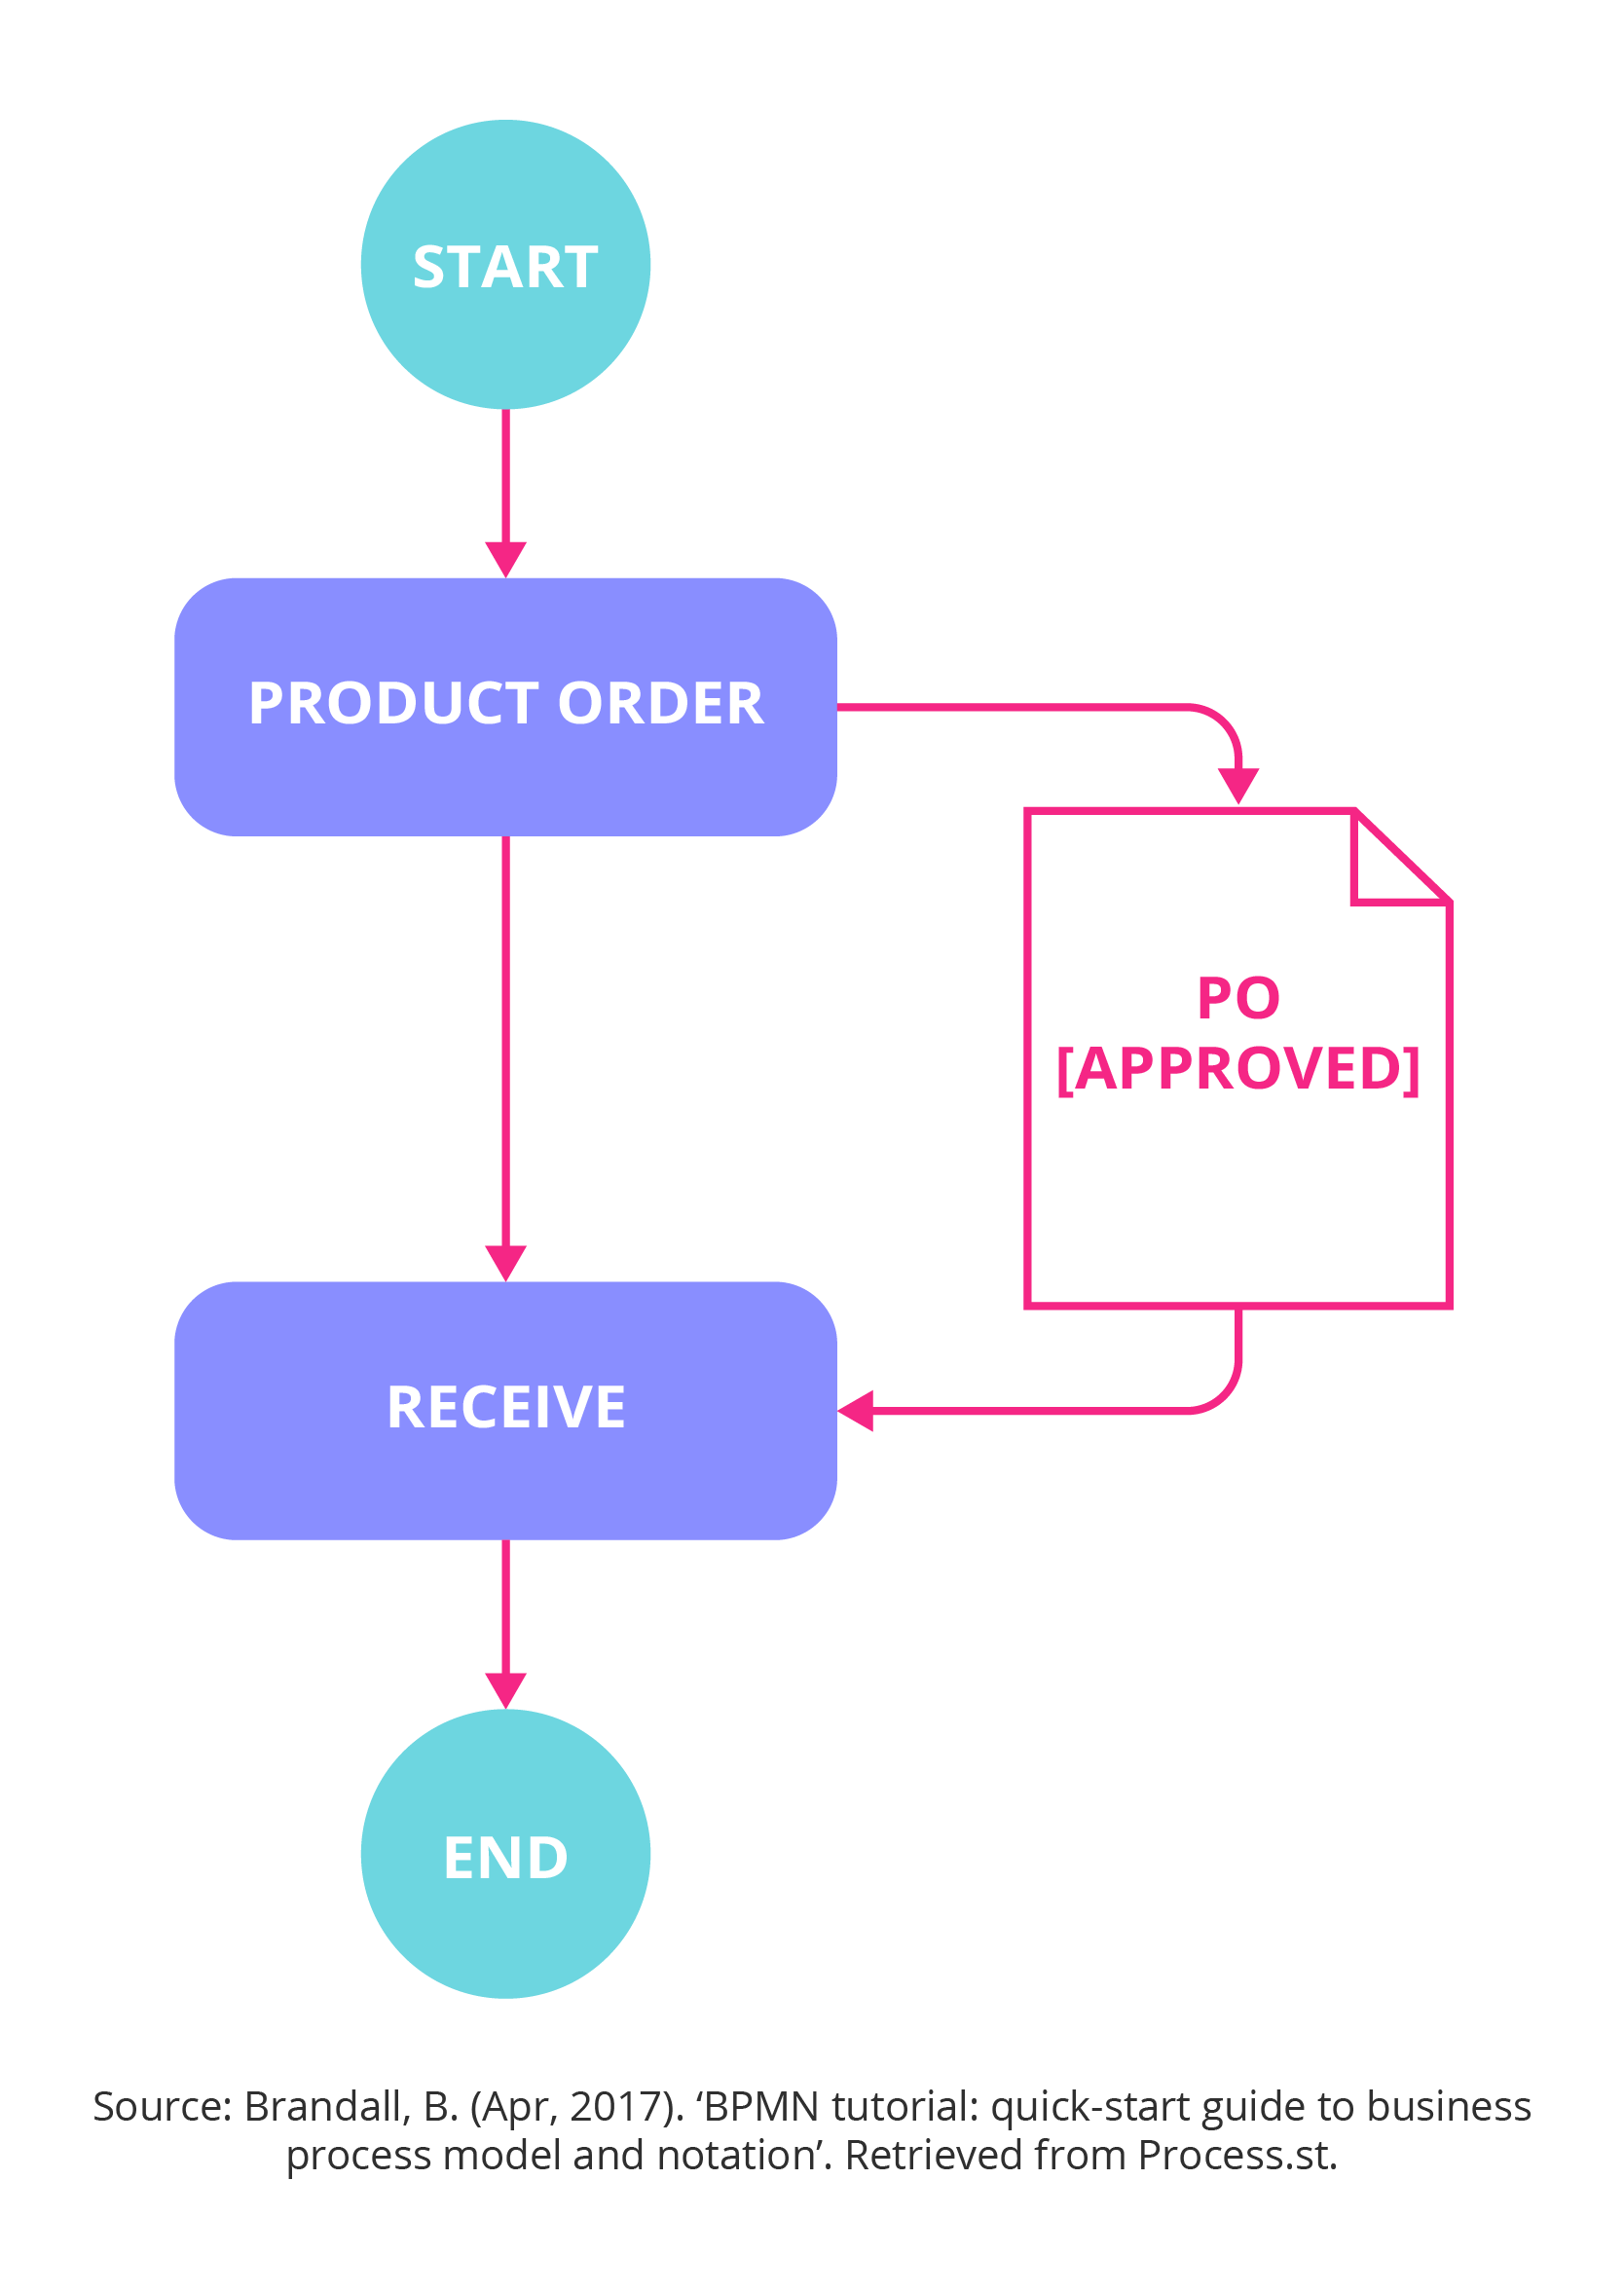 Business process modelling notation (BPMN)